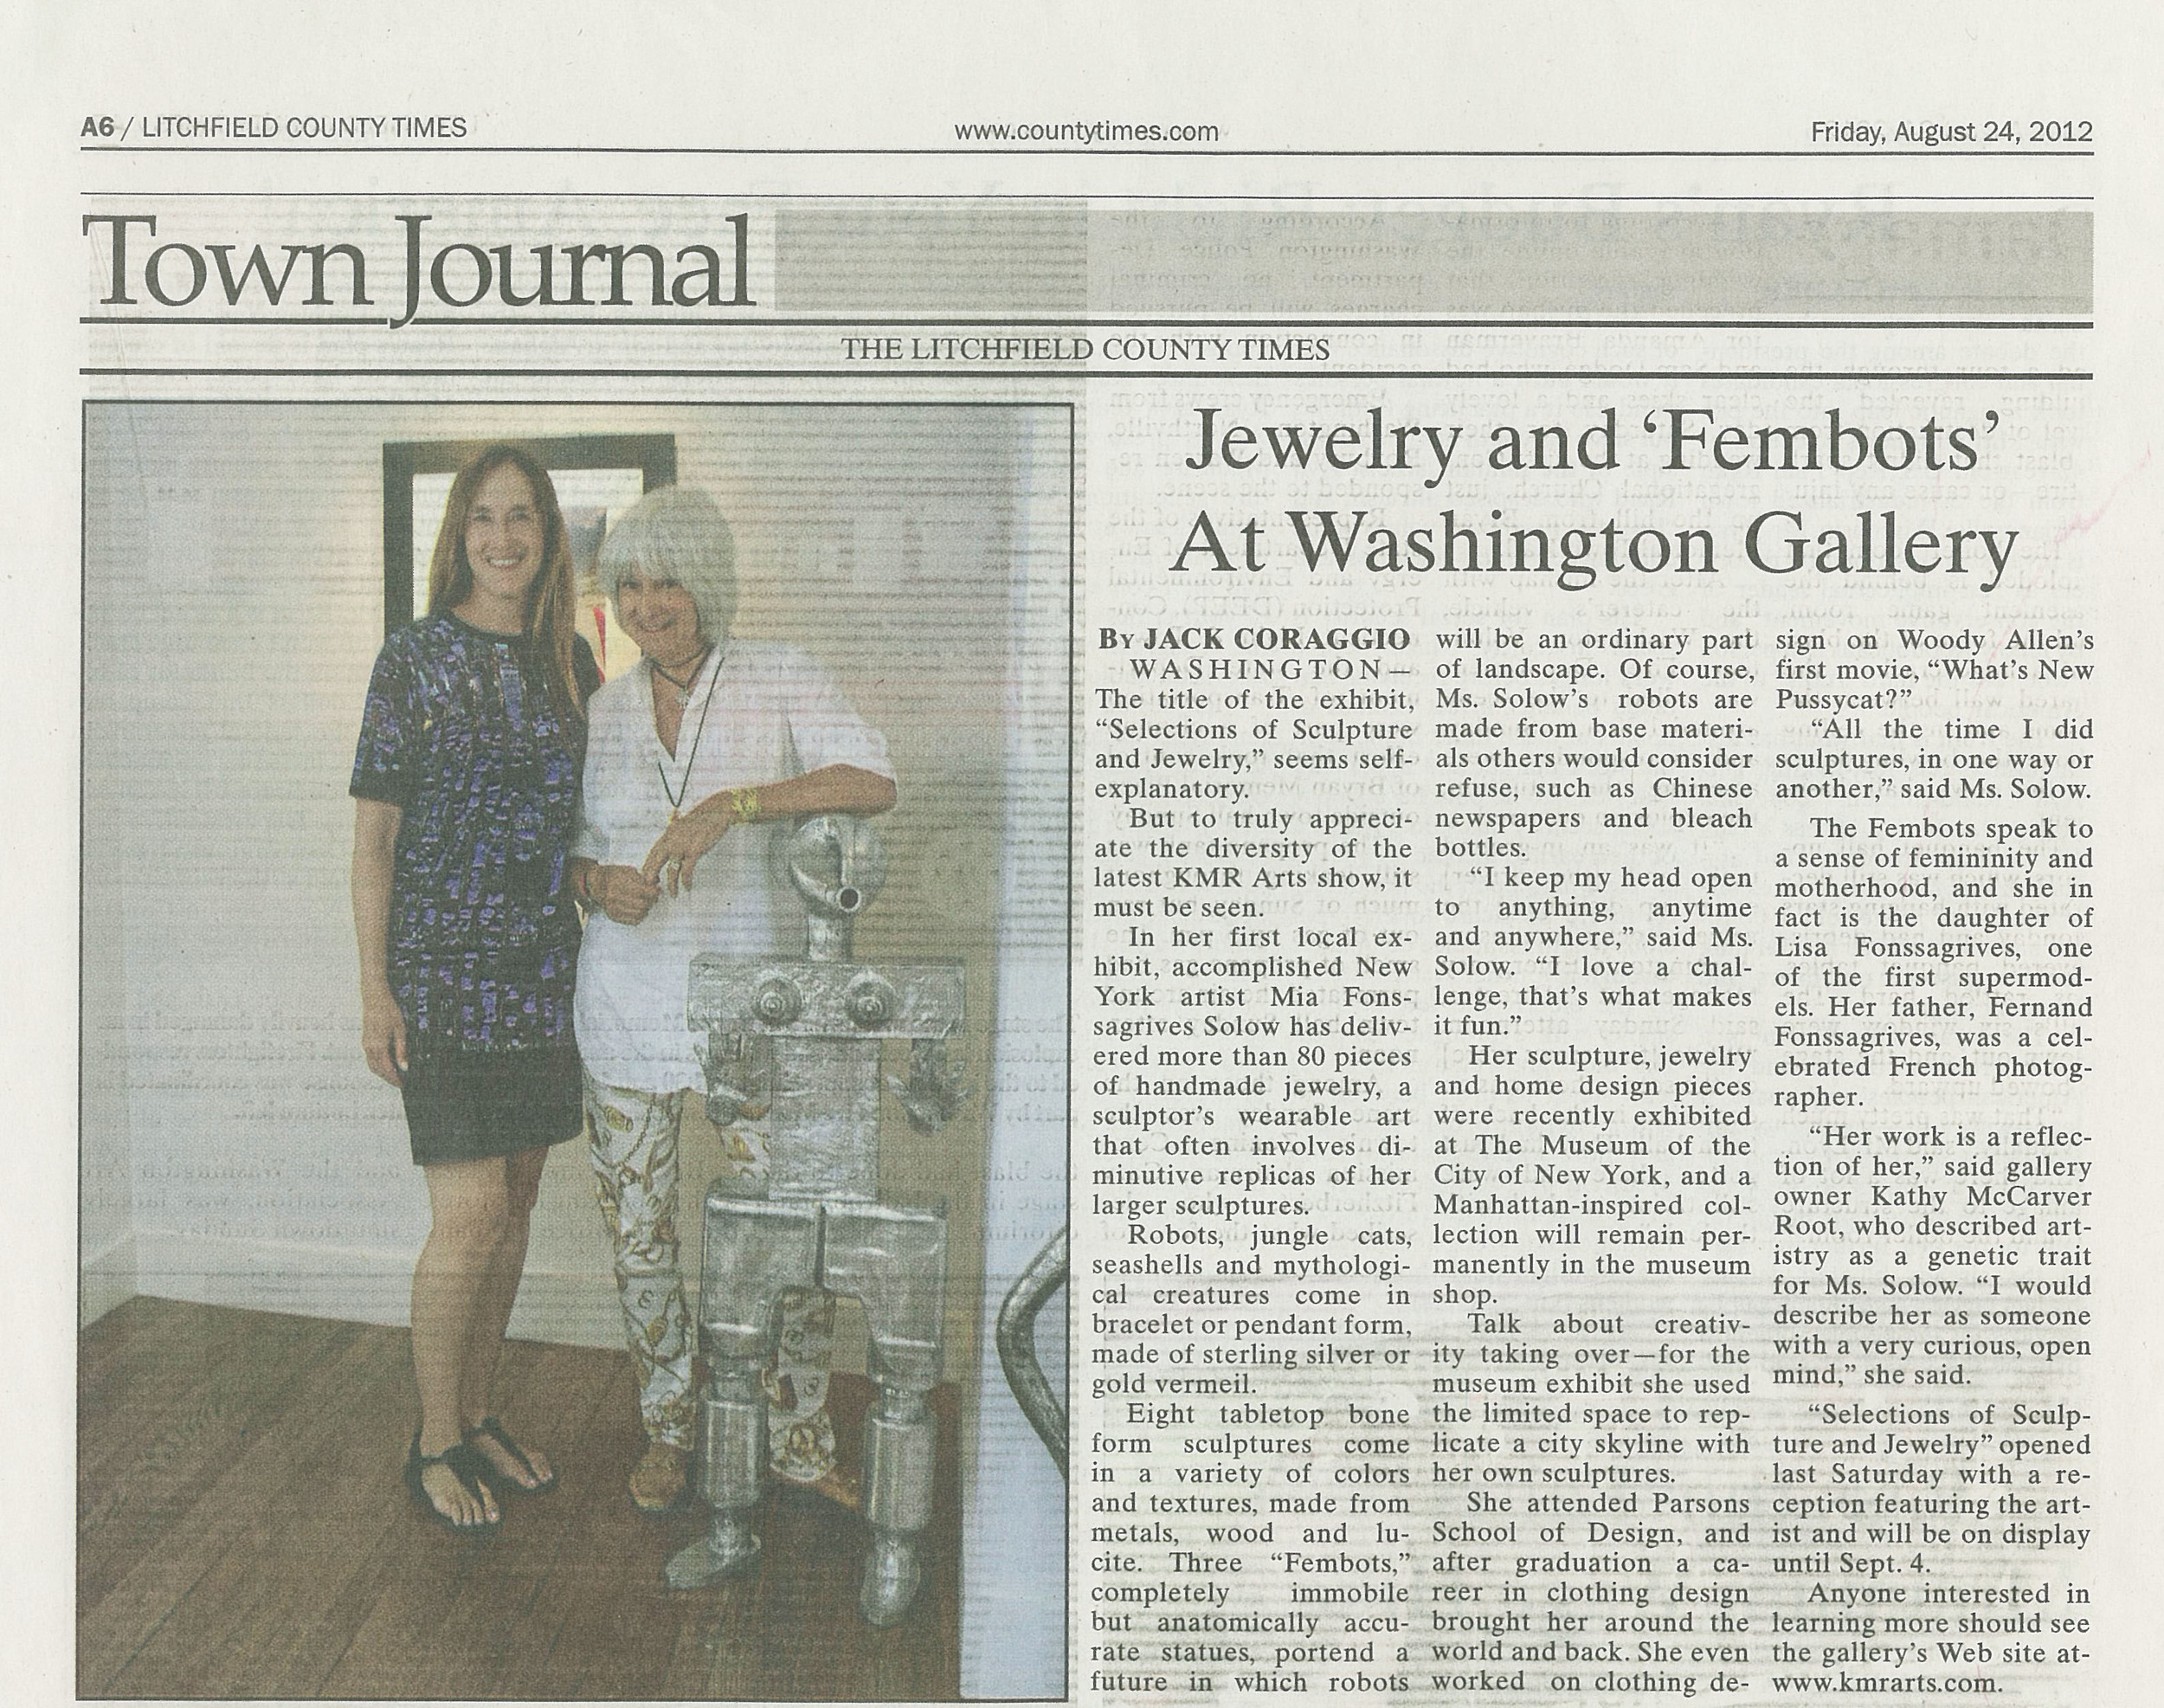 Jewelry and 'Fembots' At Washington Gallery. Aug 24, 2012 Litchfield County Times .jpg